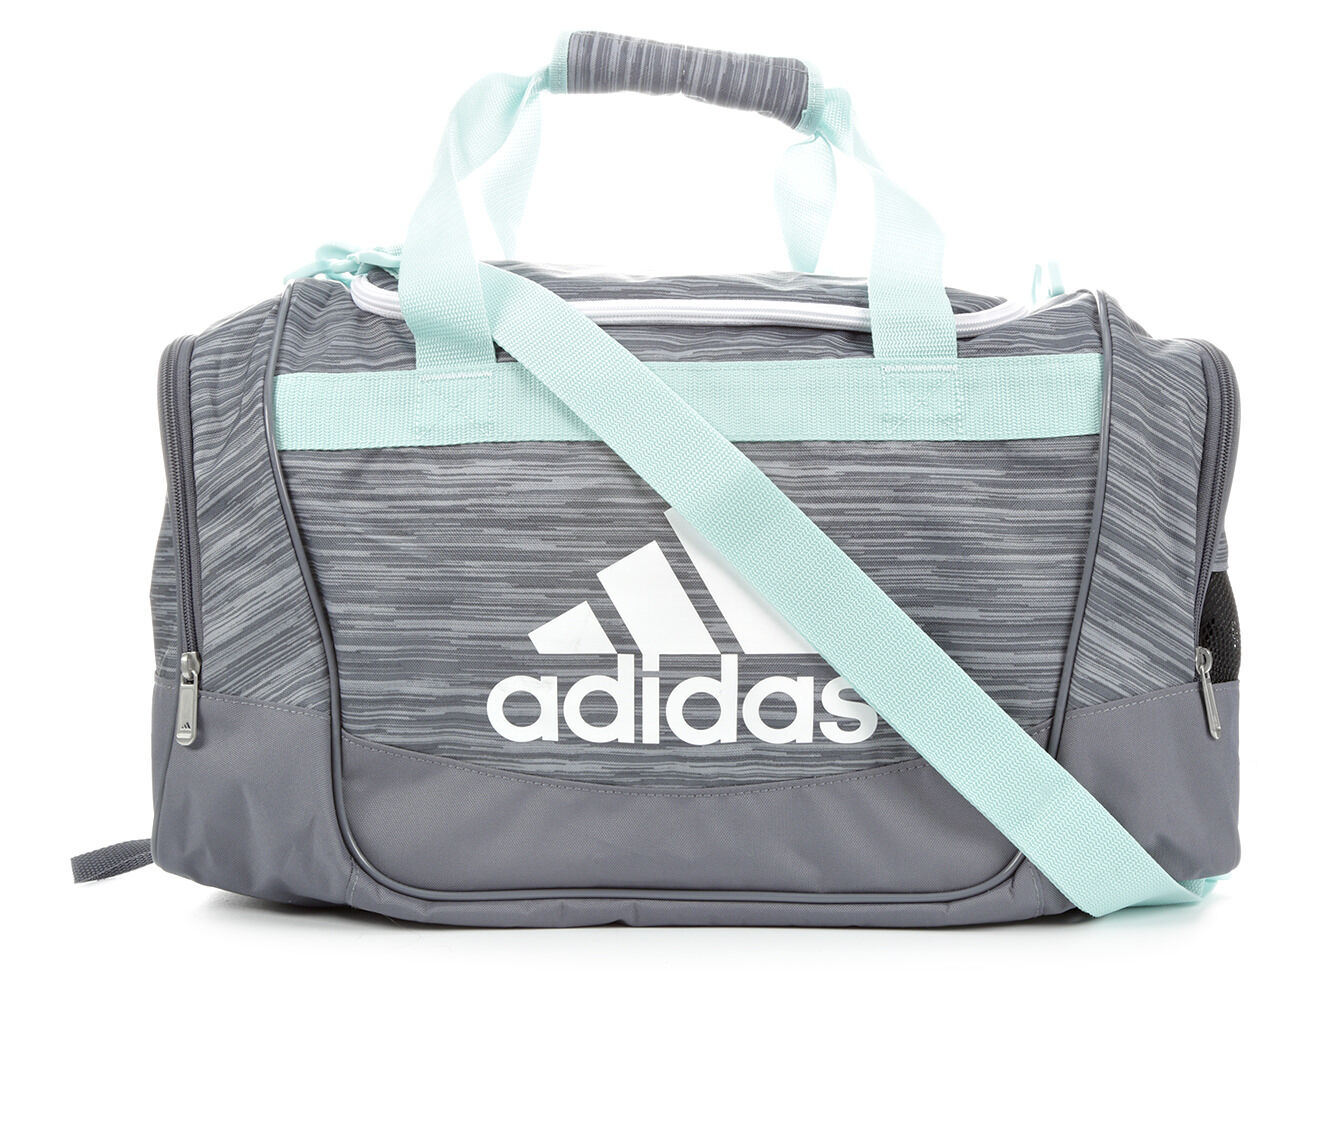 adidas small duffel bag cheap   OFF47% The Largest Catalog Discounts d9b1428521